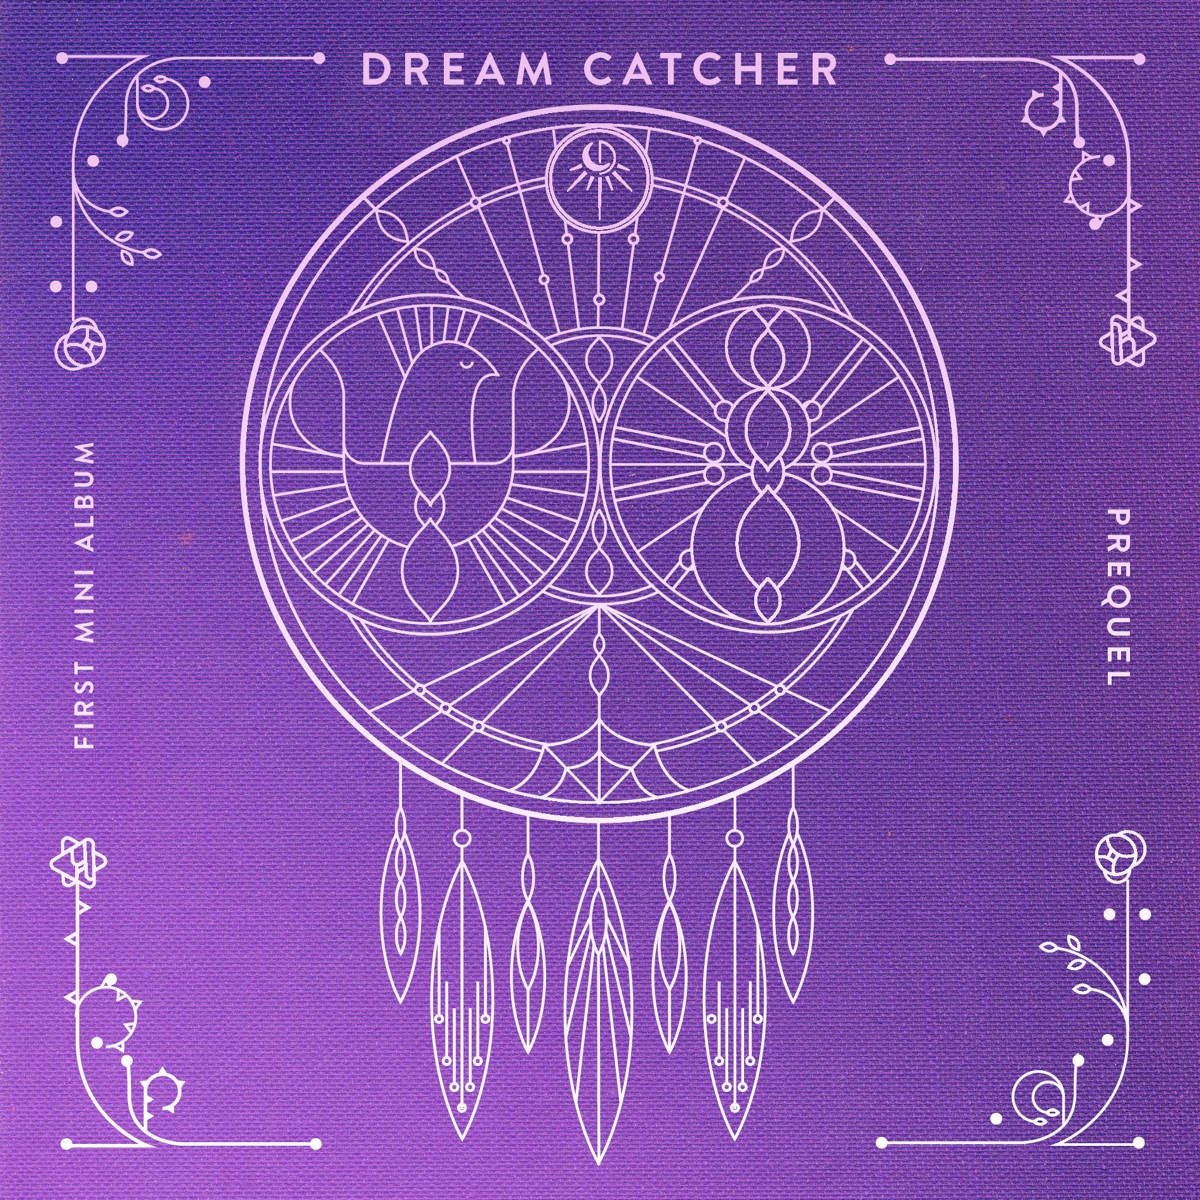 Prequel - EP DREAMCATCHER CD cover